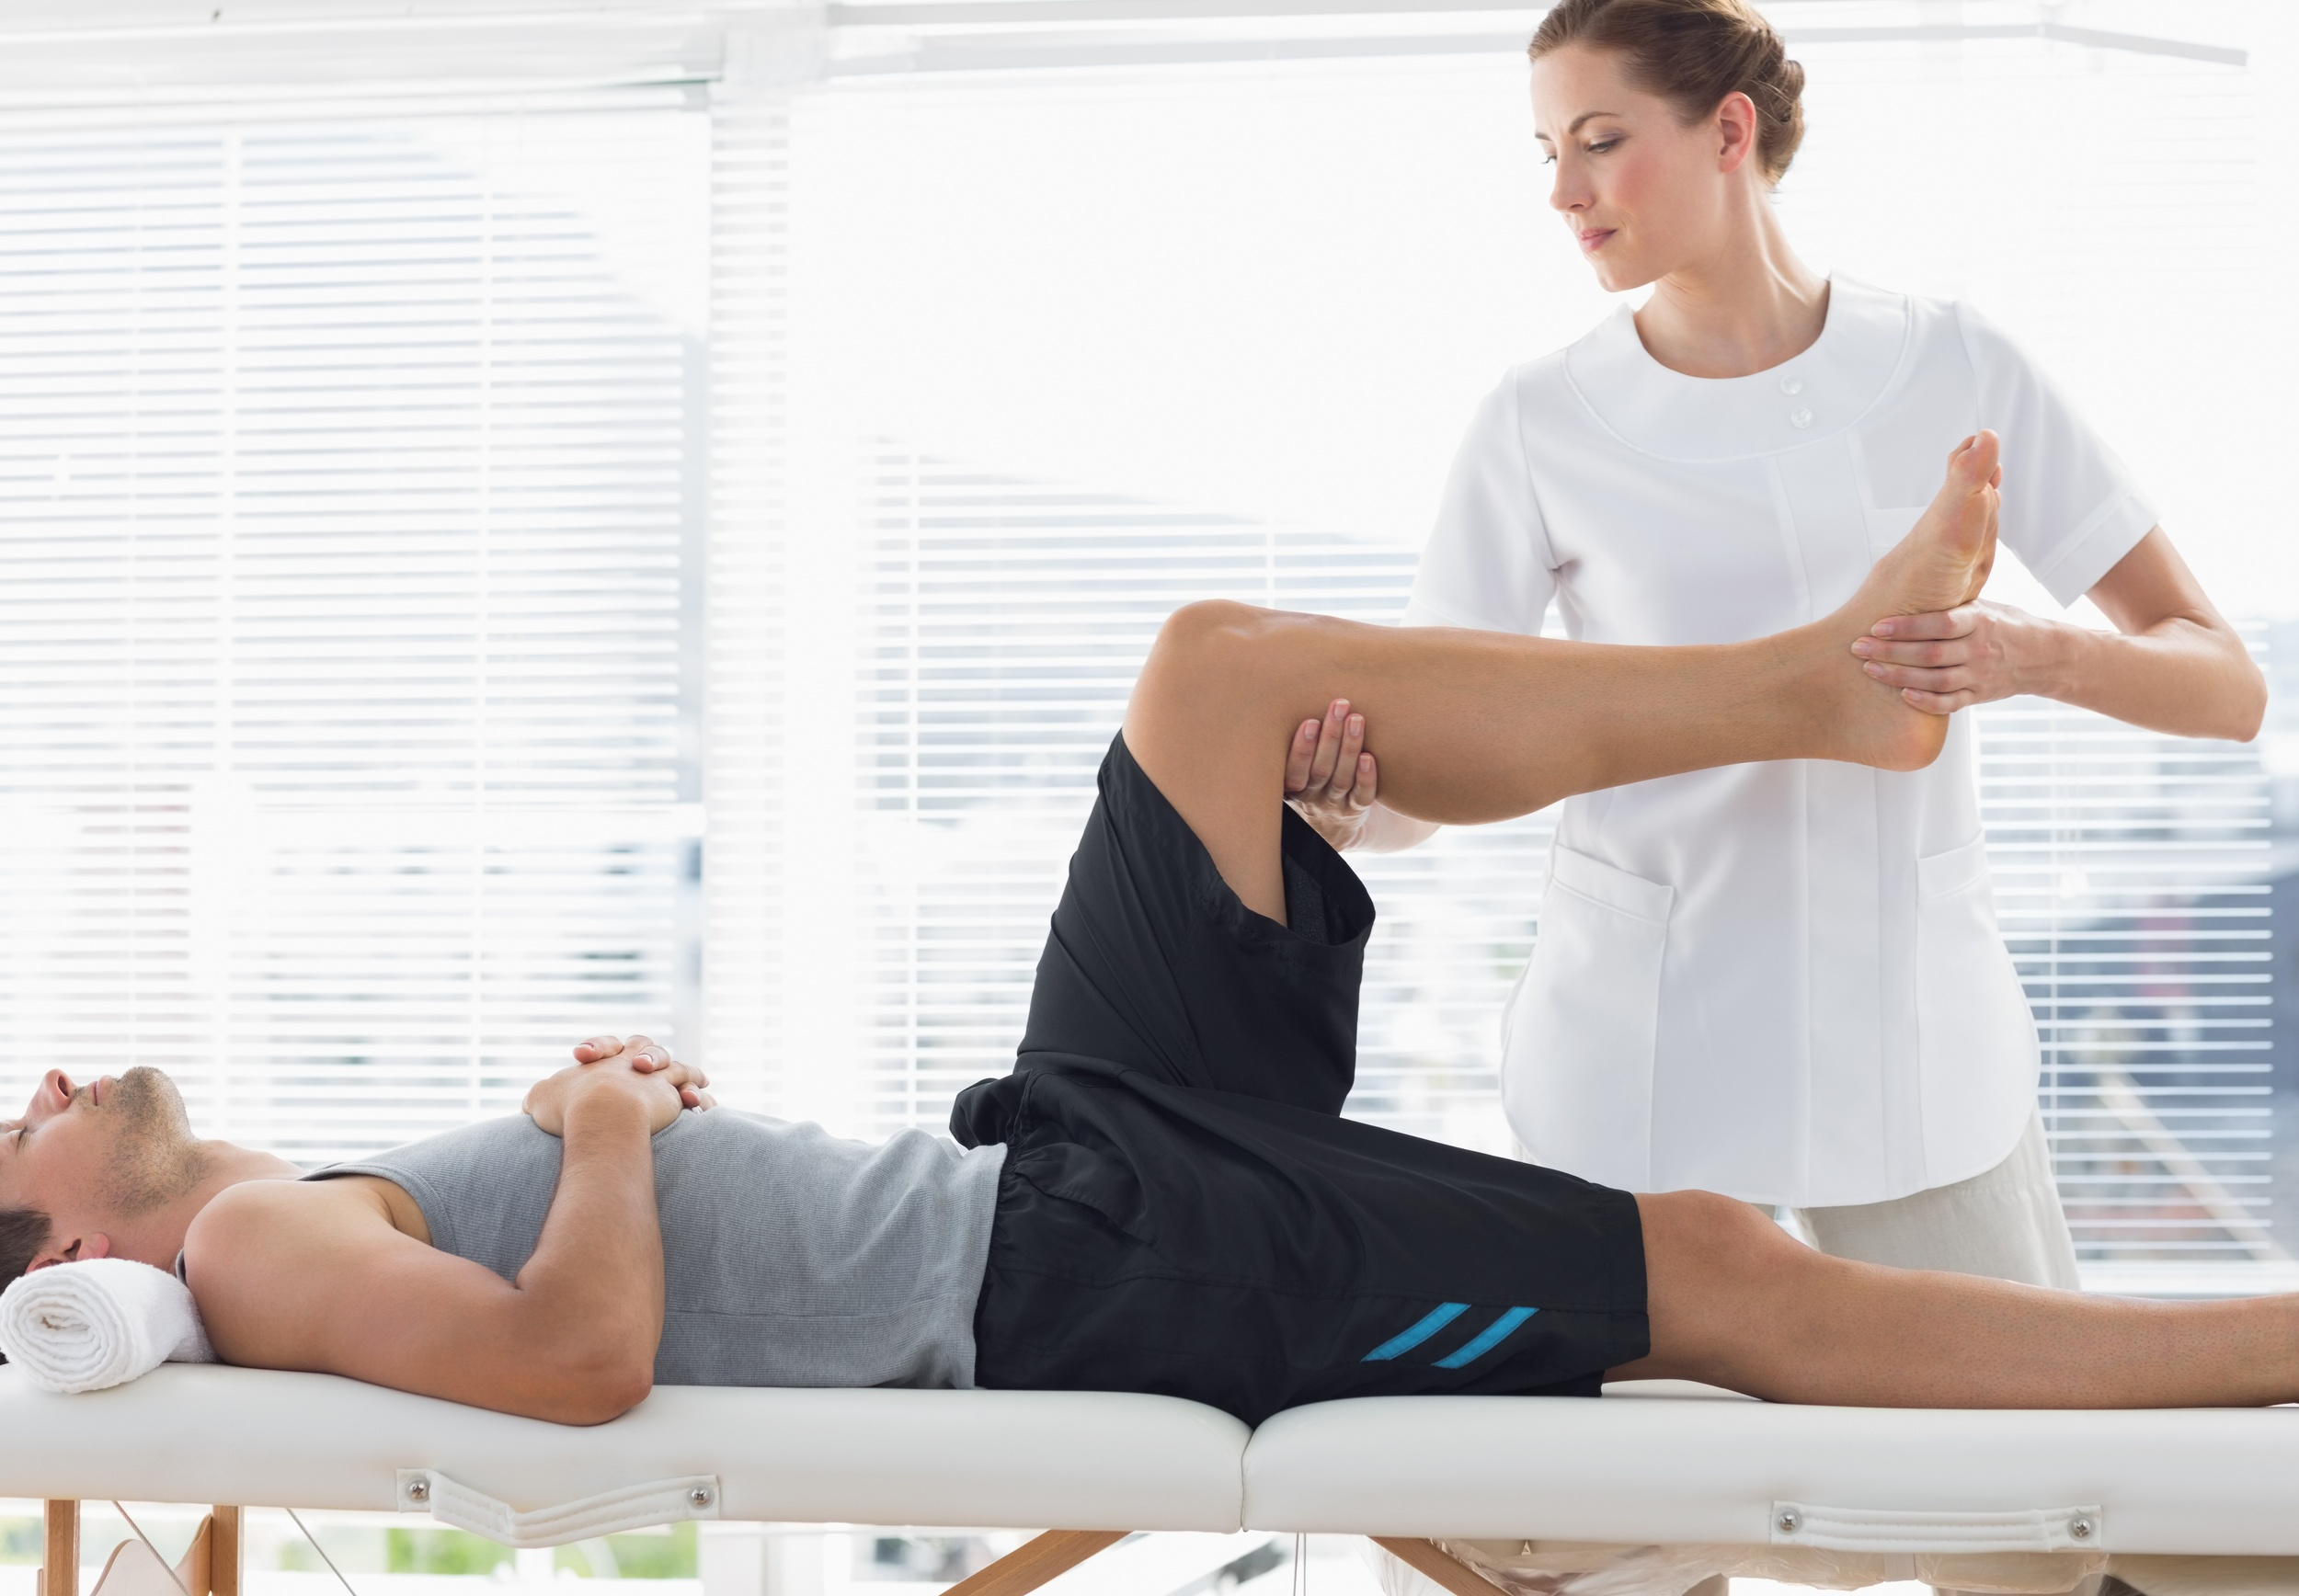 Physical Therapist Practicing Spinal Reflex Therapy